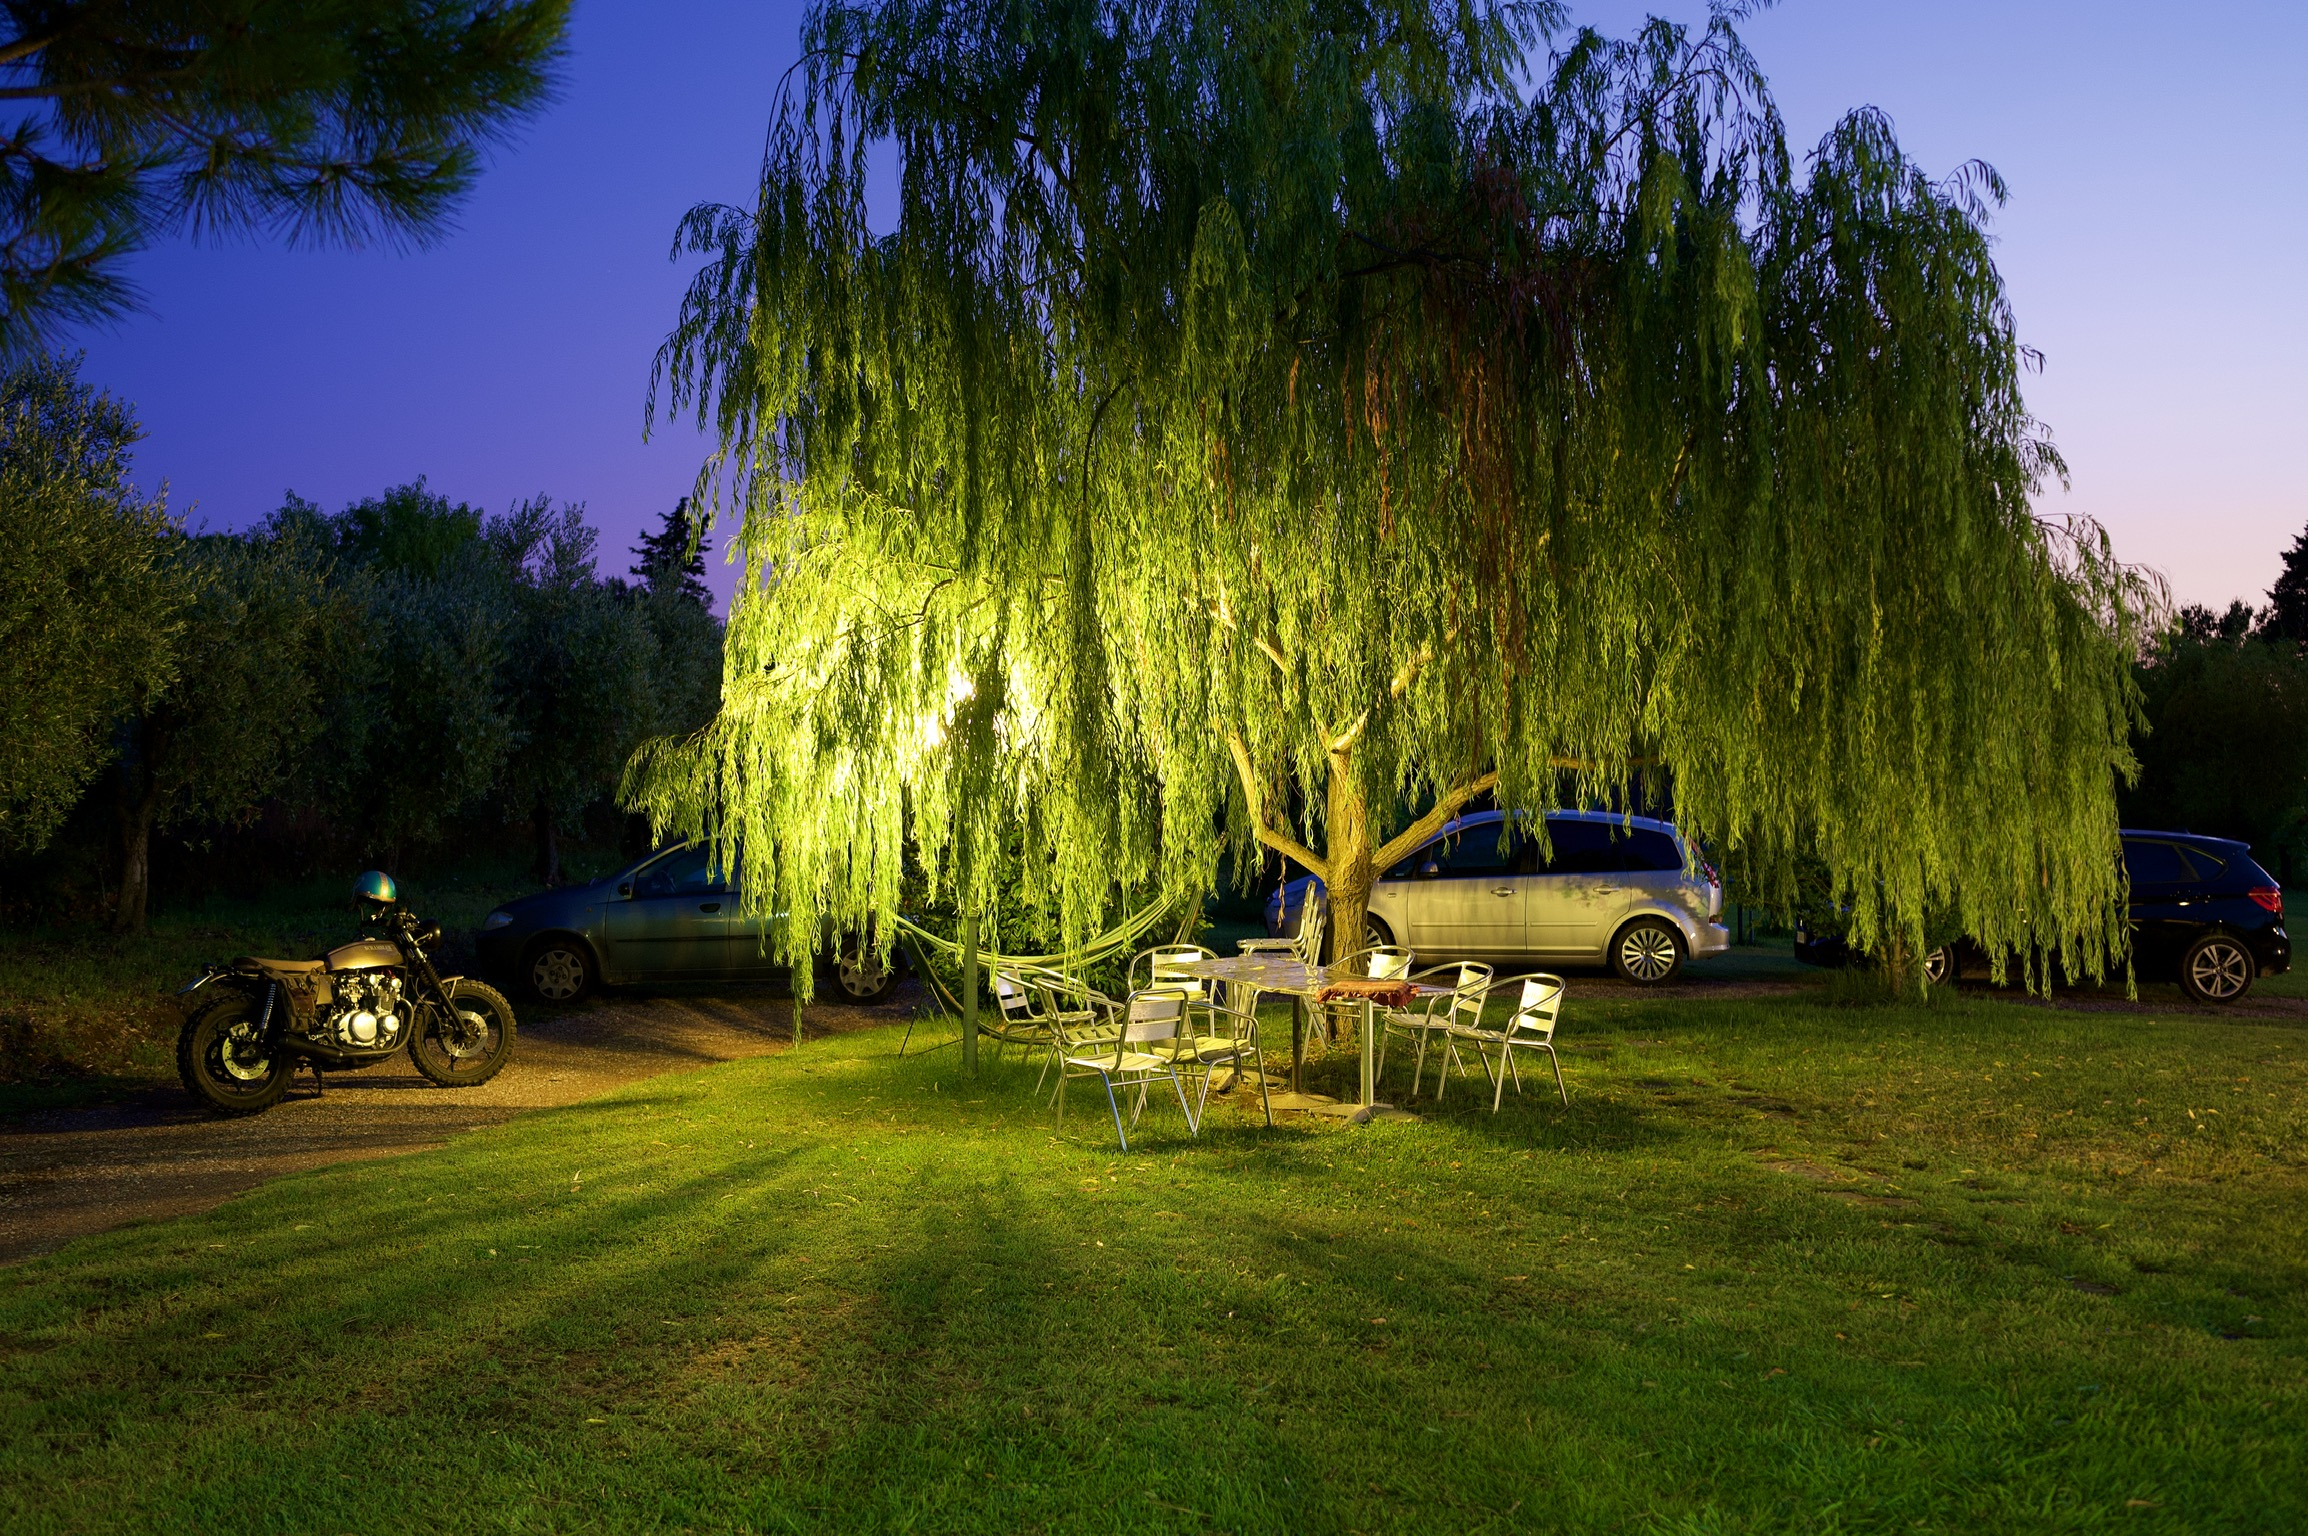 The Willow...